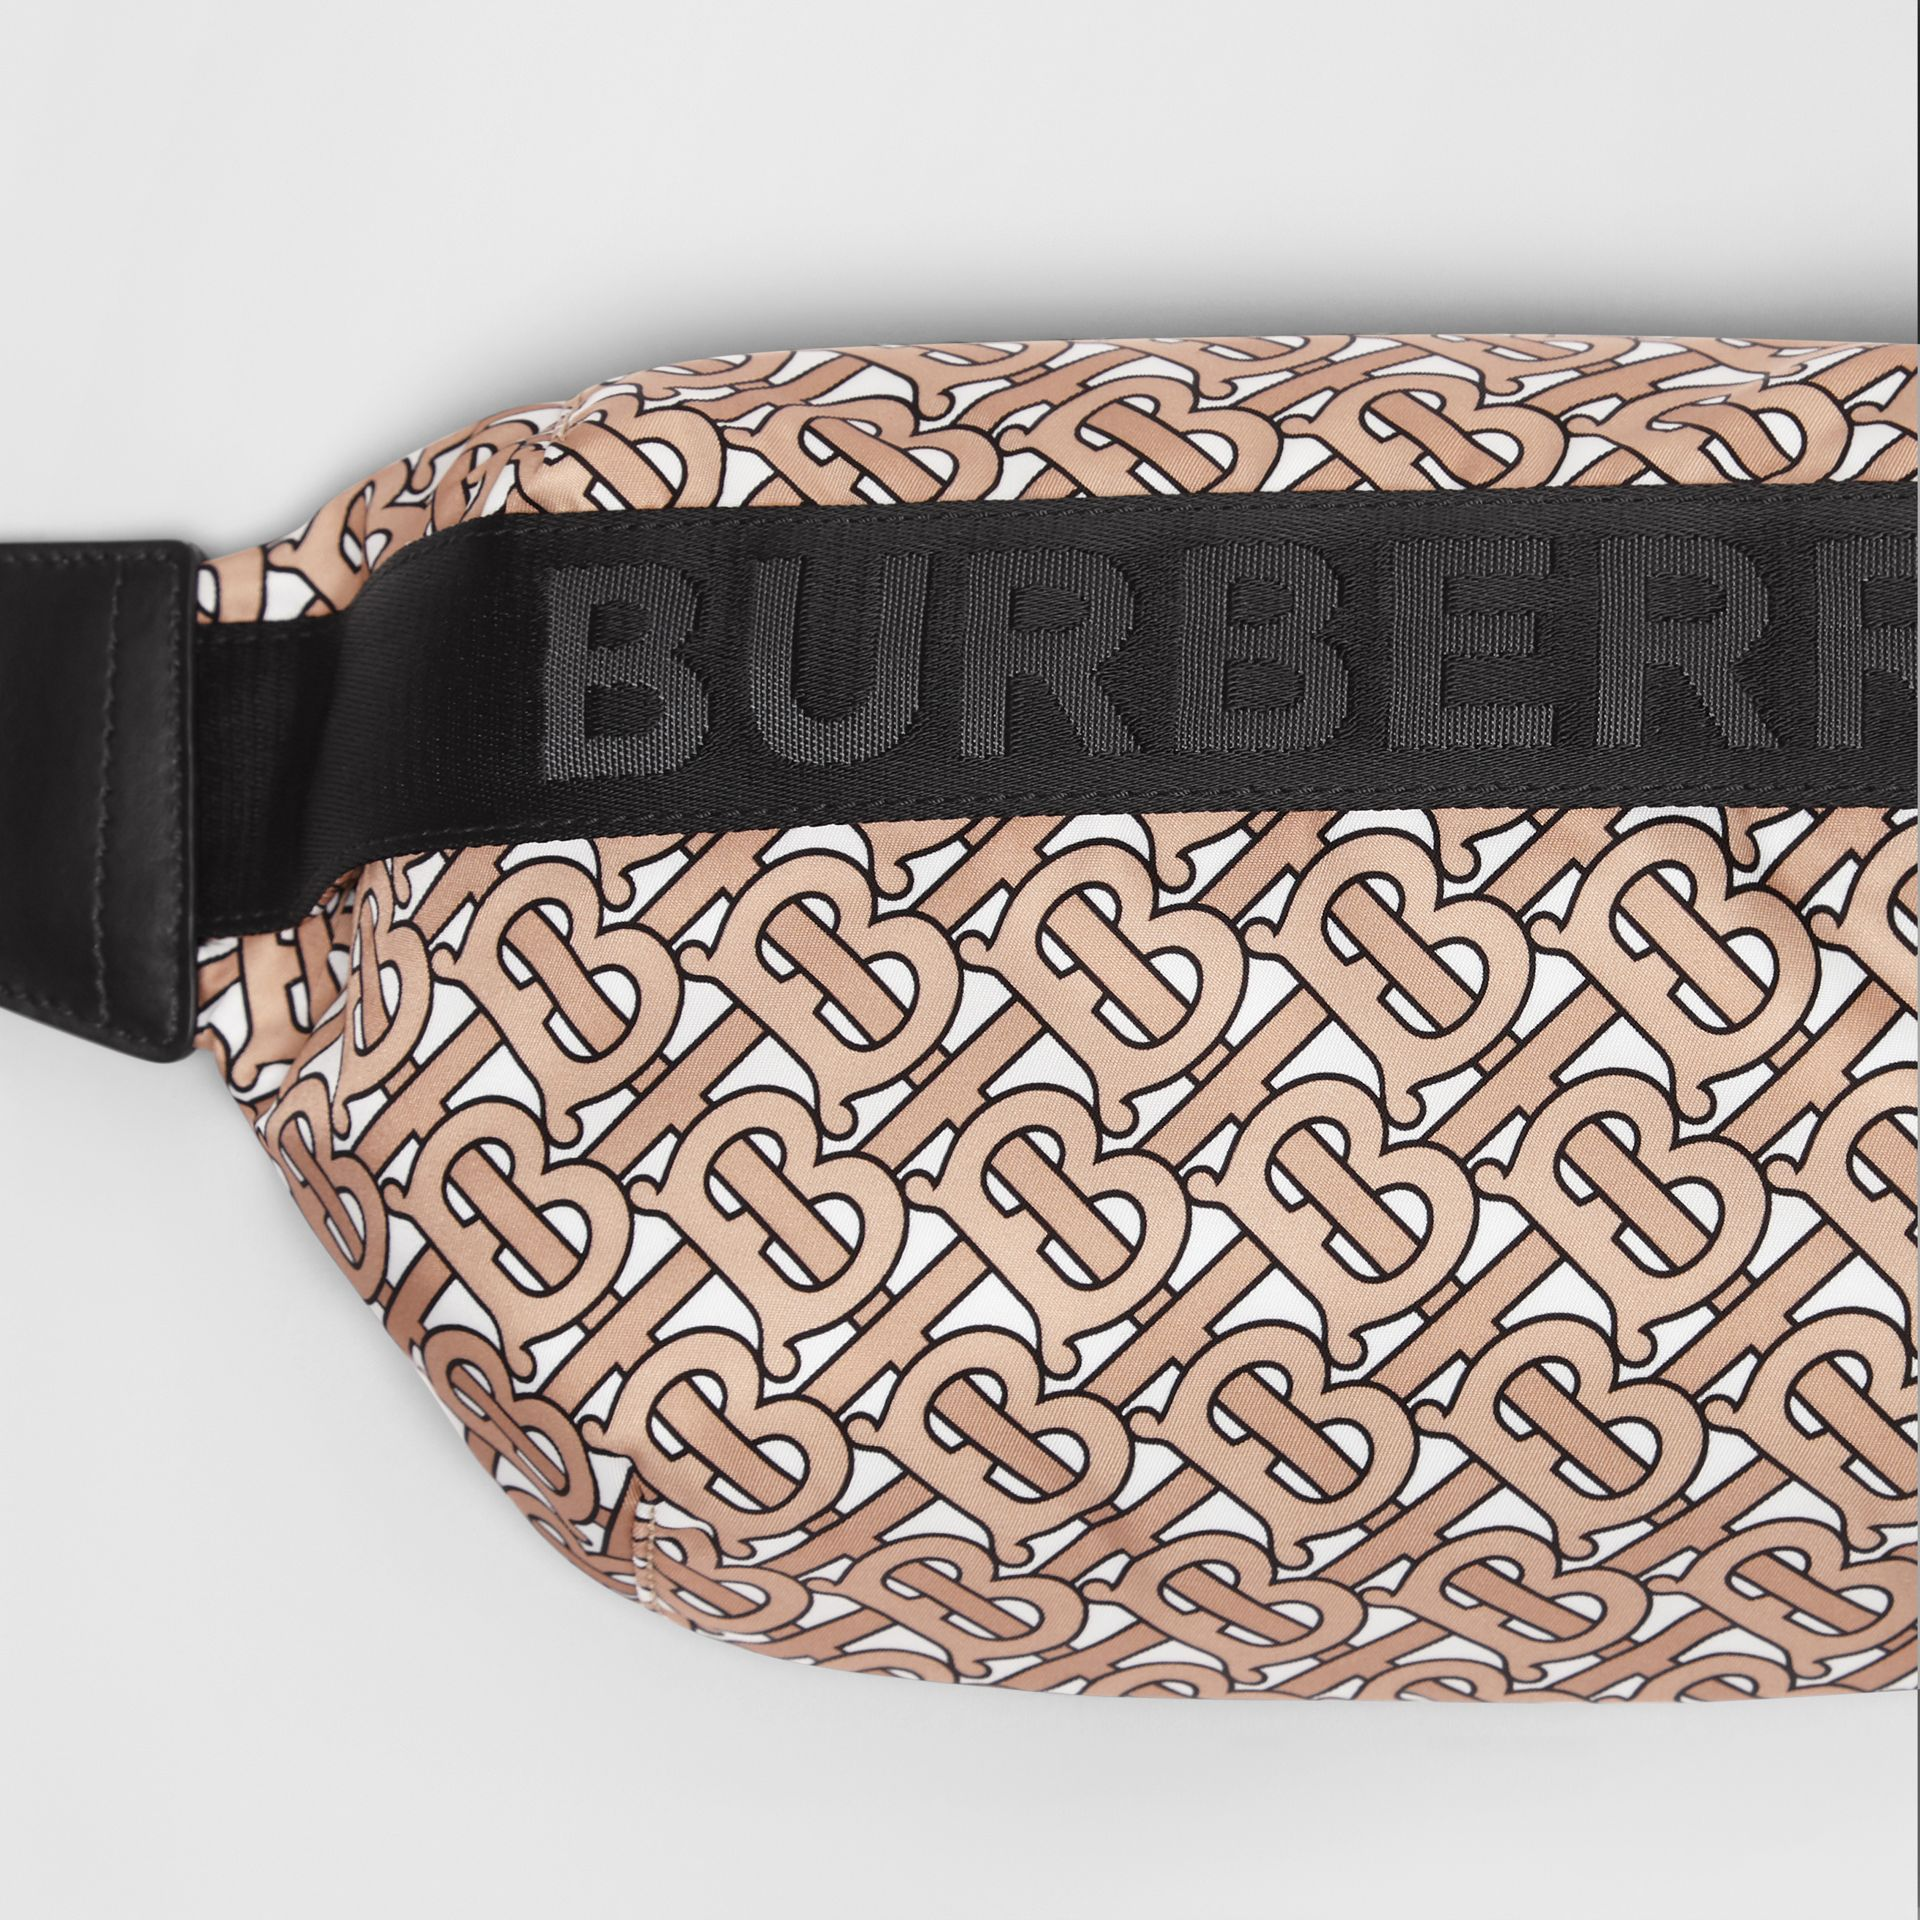 Medium Monogram Print Bum Bag in Beige | Burberry Canada - gallery image 1